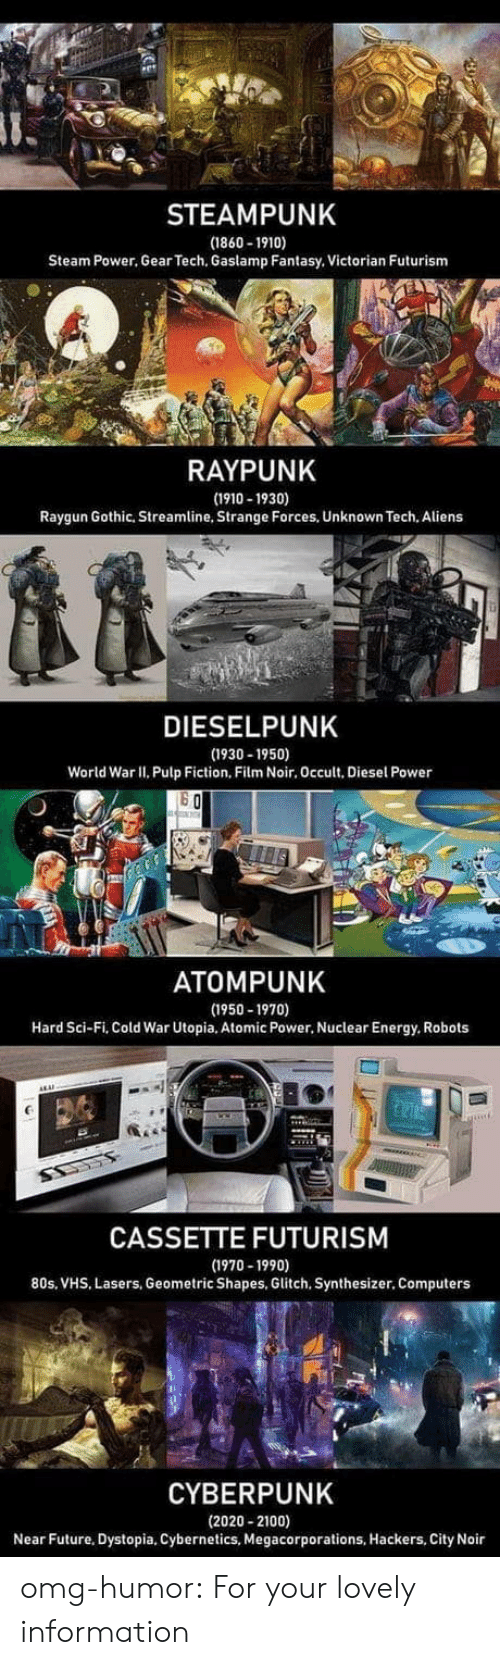 80s, Computers, and Energy: STEAMPUNK  (1860-1910)  Steam Power, Gear Tech, Gaslamp Fantasy, Victorian Futurism  RAYPUNK  (1910-1930)  Raygun Gothic, Streamline, Strange Forces, Unknown Tech. Aliens  DIESELPUNK  (1930-1950)  World War II. Pulp Fiction, Film Noir, Occult, Diesel Power  ATOMPUNK  (1950-1970)  Hard Sci-Fi, Cold War Utopia, Atomic Power, Nuclear Energy, Robots  CASSETTE FUTURISM  (1970-1990)  80s, VHS, Lasers, Geometric Shapes, Glitch, Synthesizer. Computers  CYBERPUNK  (2020-2100)  Near Future, Dystopia, Cybernetics, Megacorporations, Hackers, City Noir omg-humor:  For your lovely information